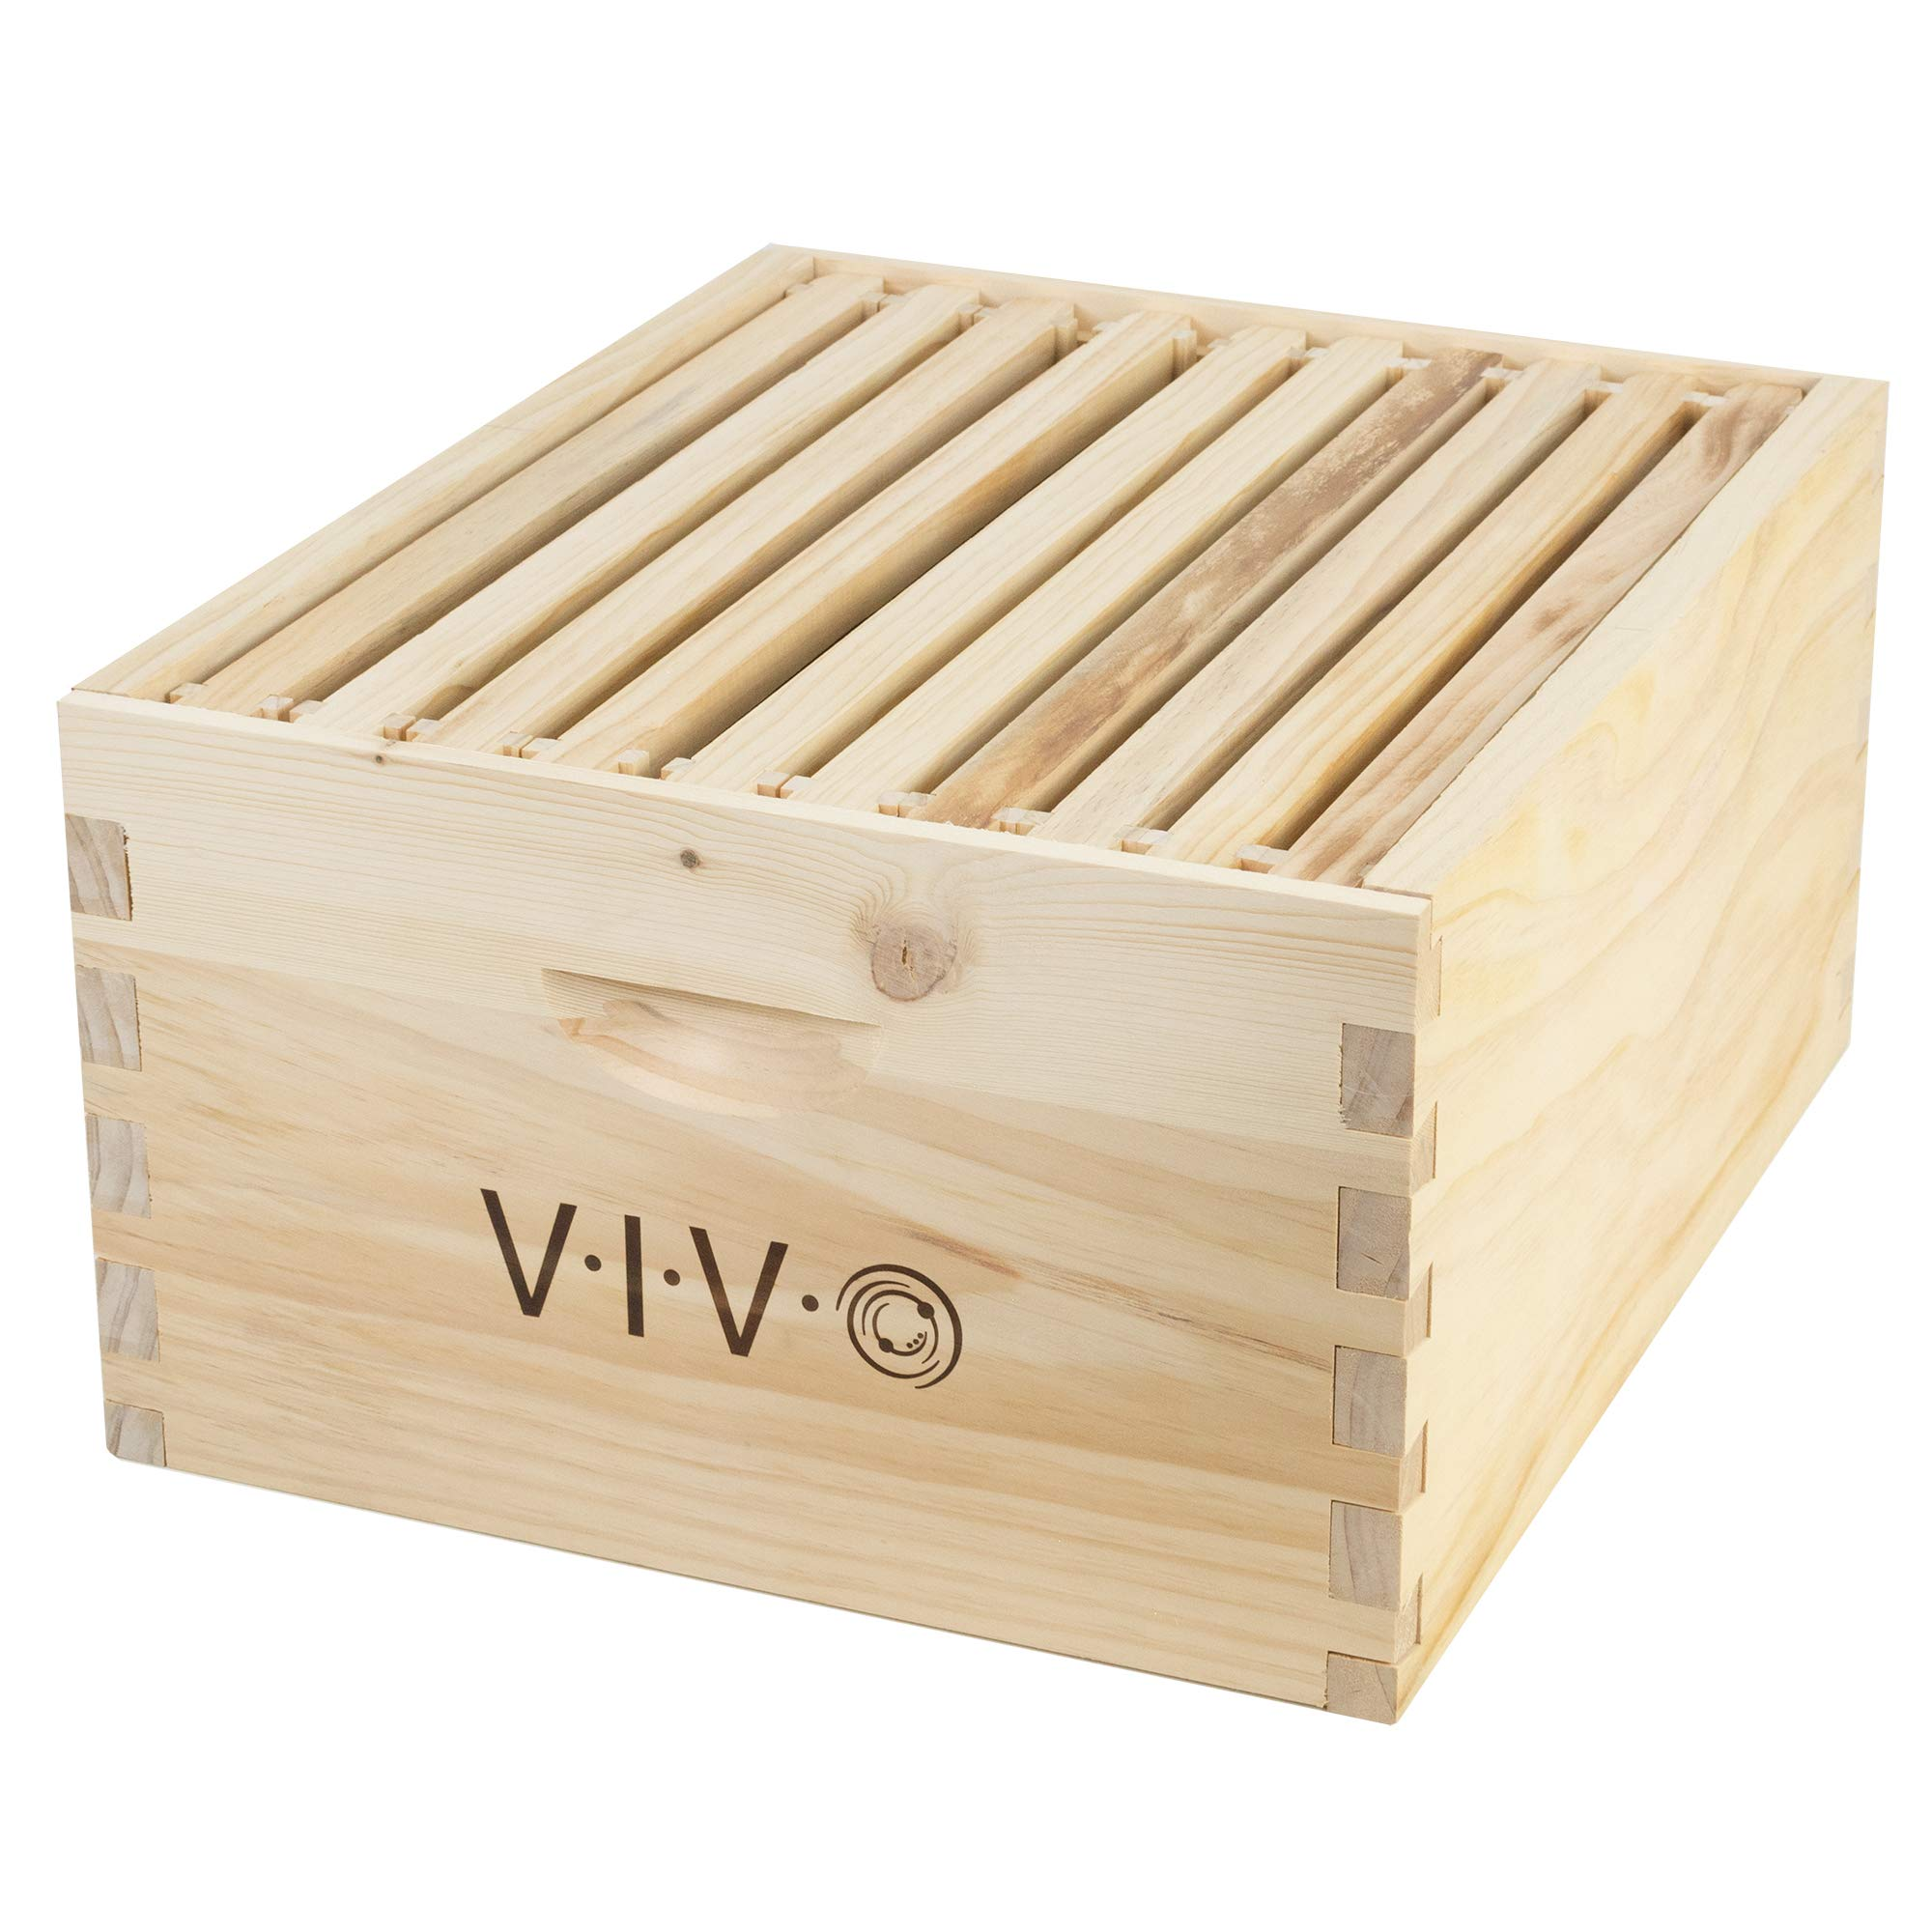 VIVO Beekeeping Add-on Deep Super Bee Hive Box Kit with 10 Frames for Langstroth Beehive (BEE-HV04) by VIVO